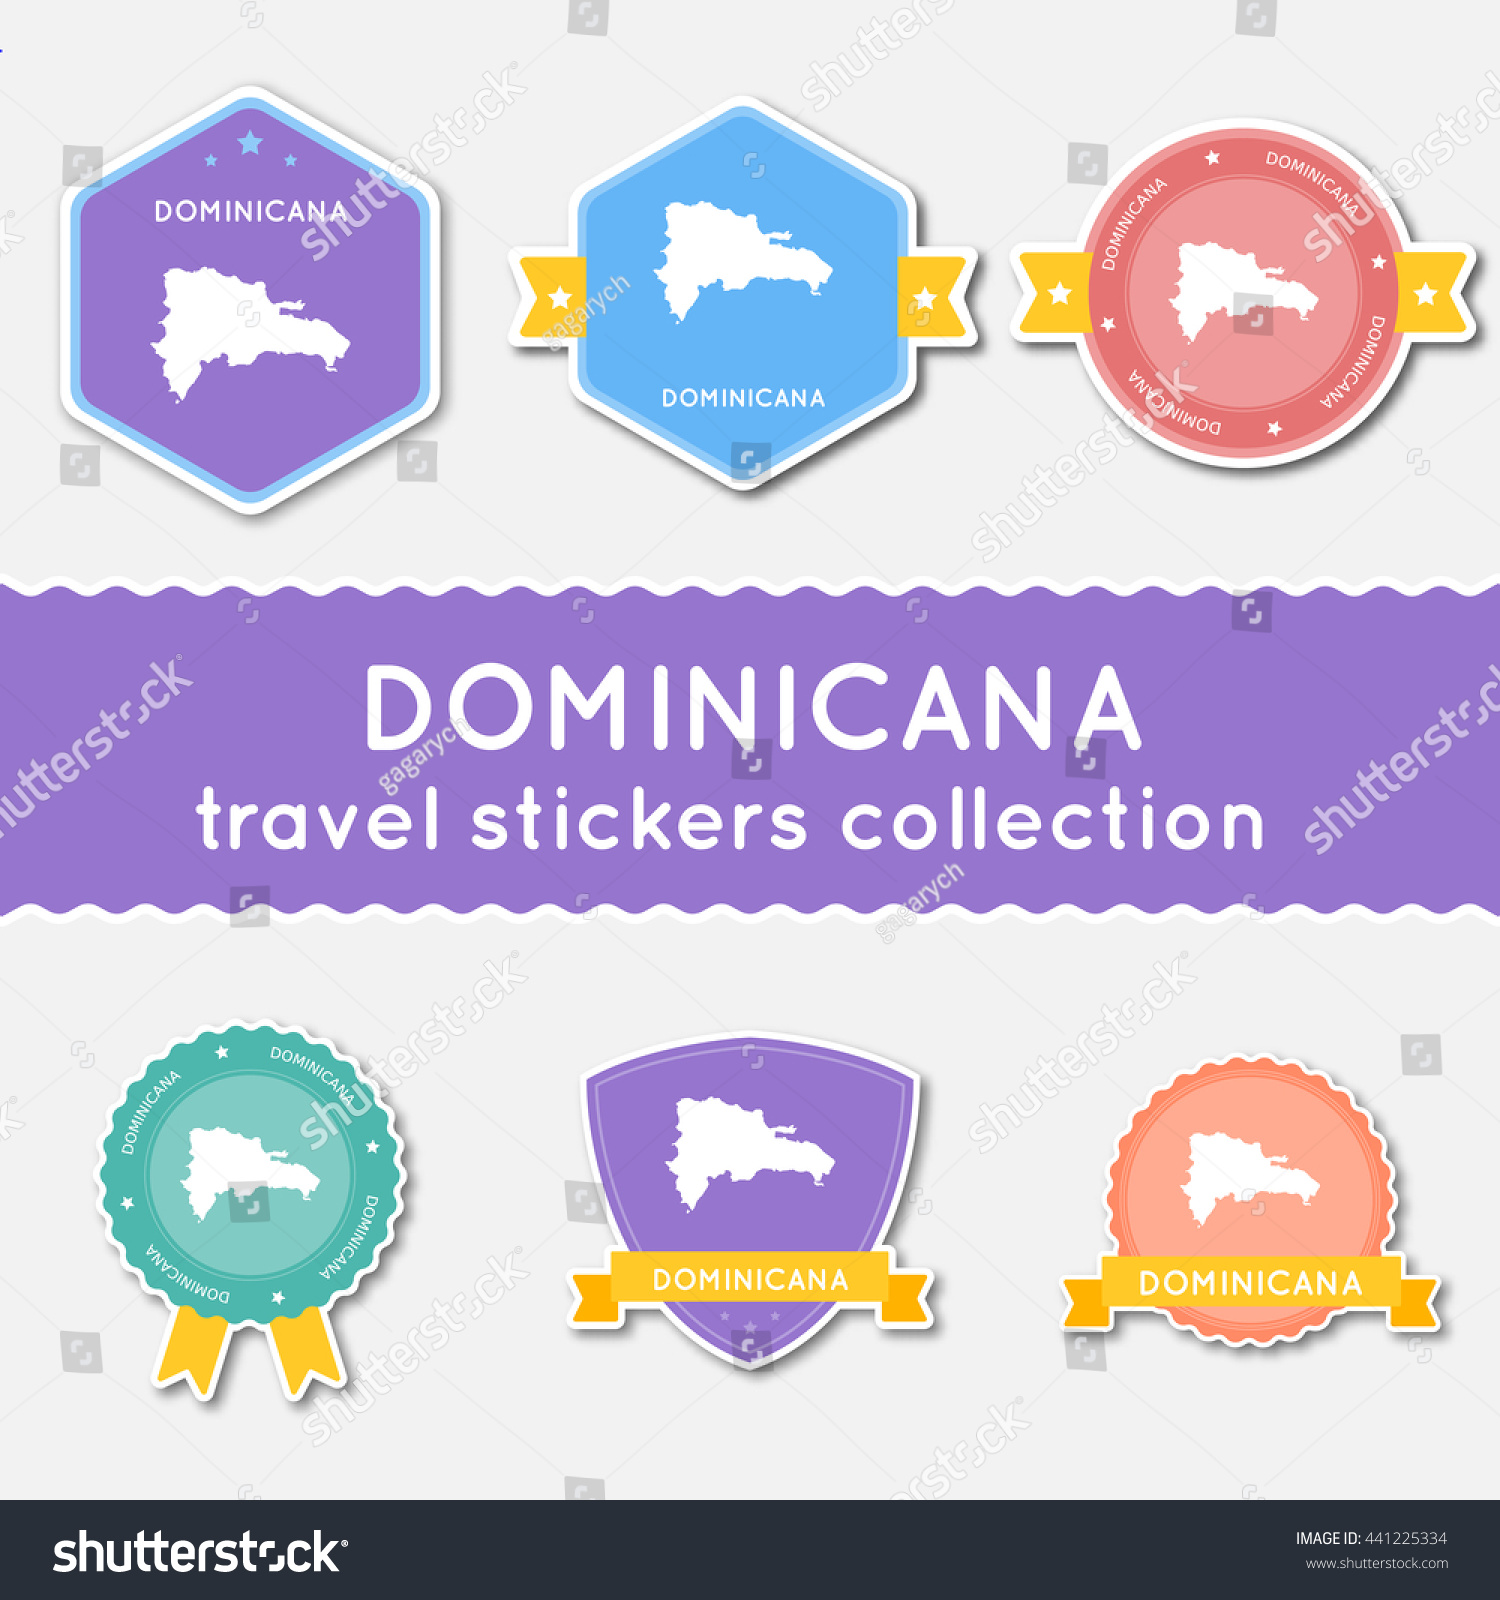 Printable Travel Maps Of Dominican Republic Moon Travel Guides - Map of united states and dominican republic